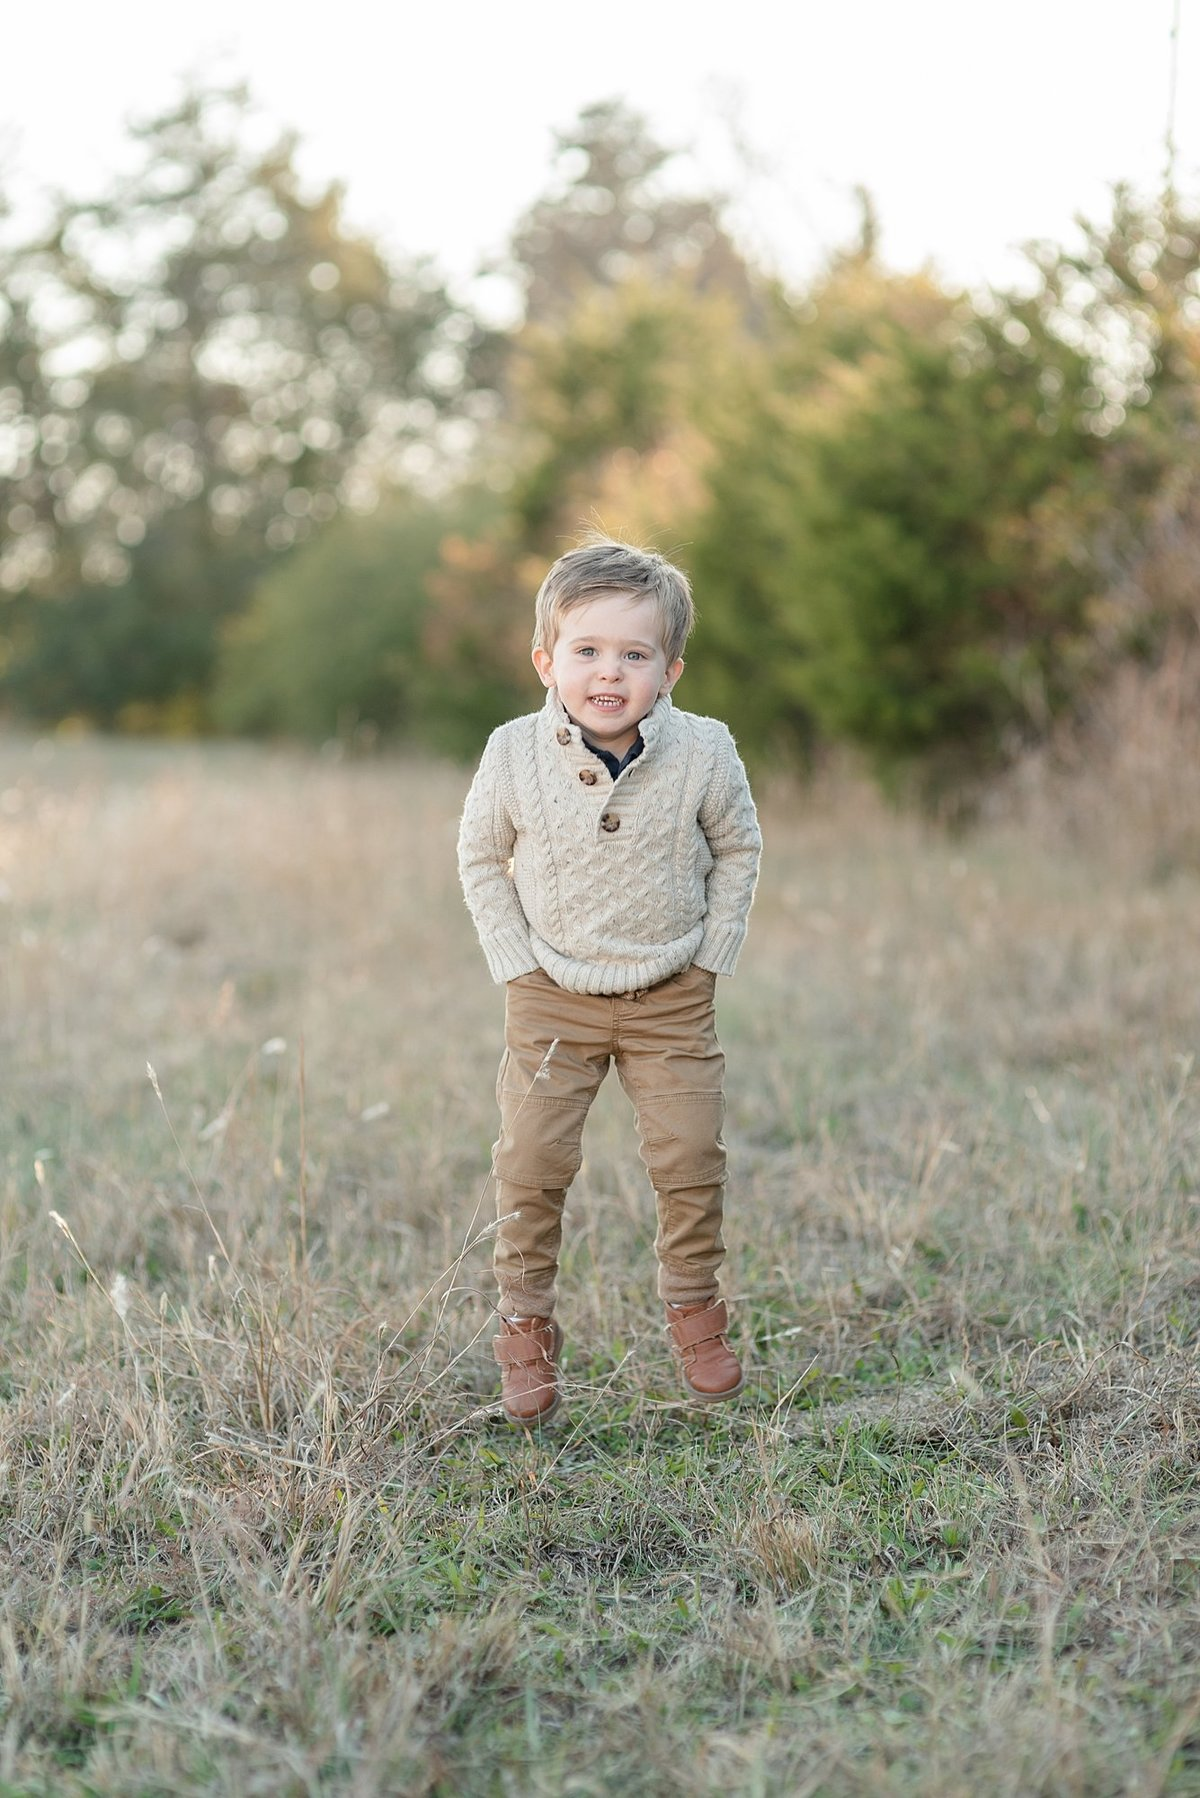 A toddler is jumping in the air in the field for a family portrait session in Nashville